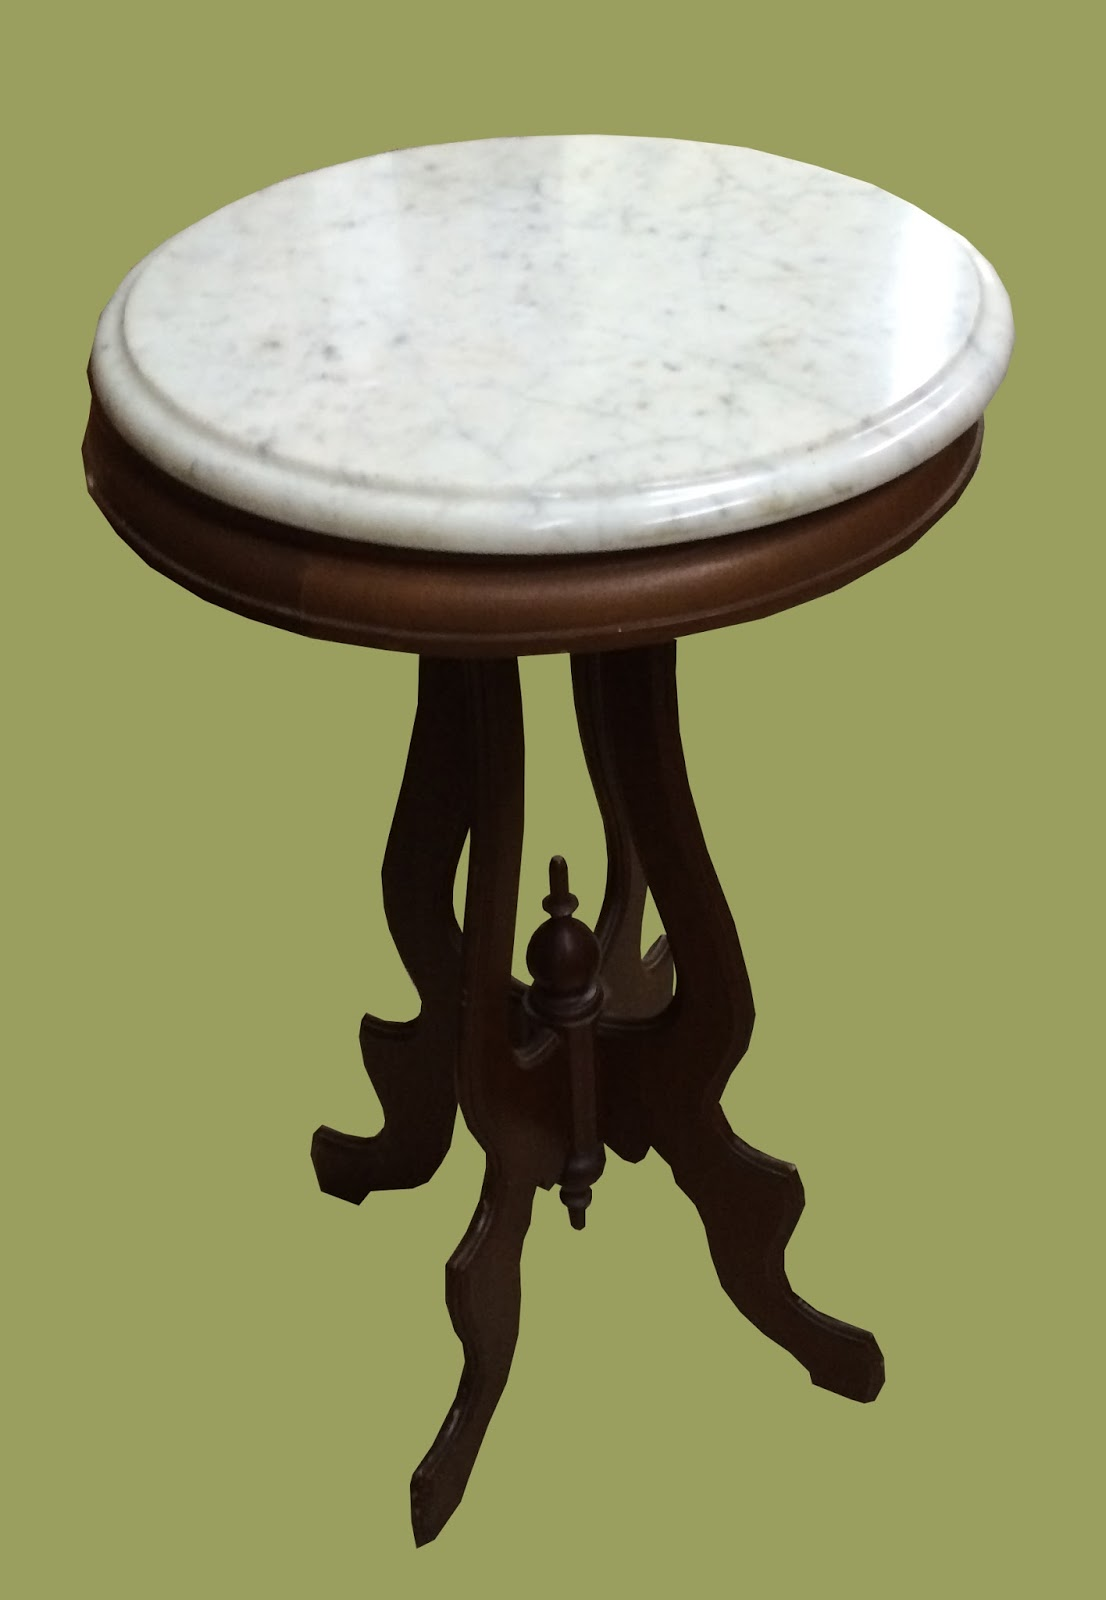 uhuru furniture collectibles victorian marble top accent table sold round glass end bedroom curtains runner sewing pattern wine cube inch height chestnut black tables cocktail